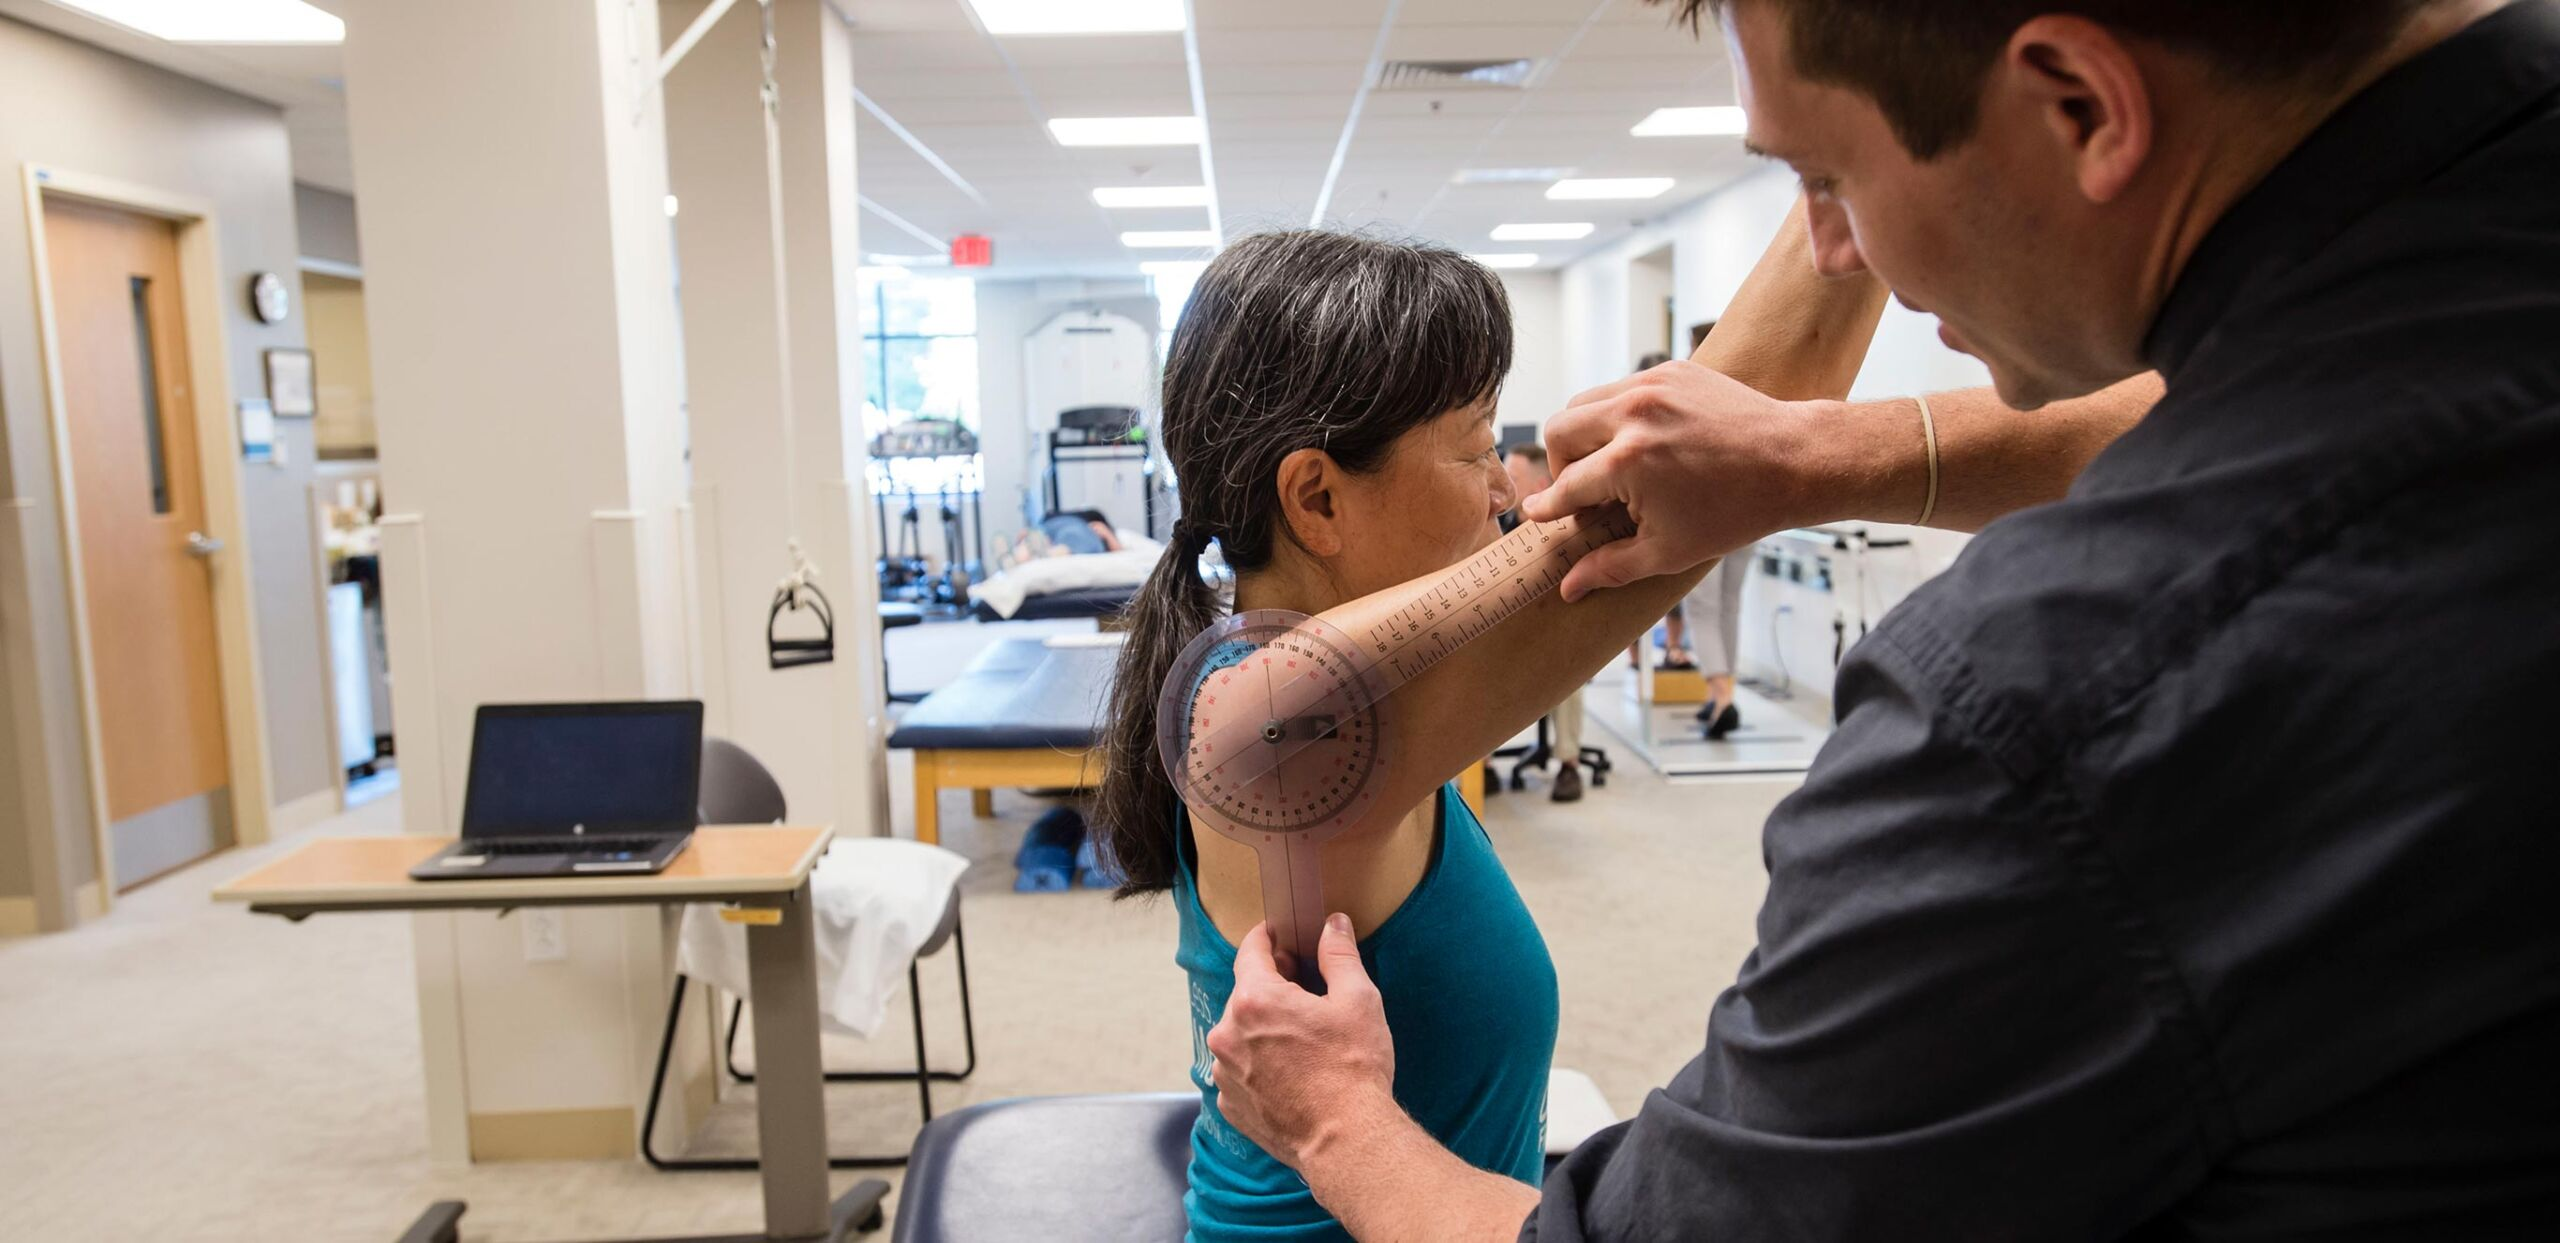 Physical therapist evaluates a female patient's range of arm motion at Cooley Dickinson Medical Group Rehabilitation Services, Northampton, MA 01060.